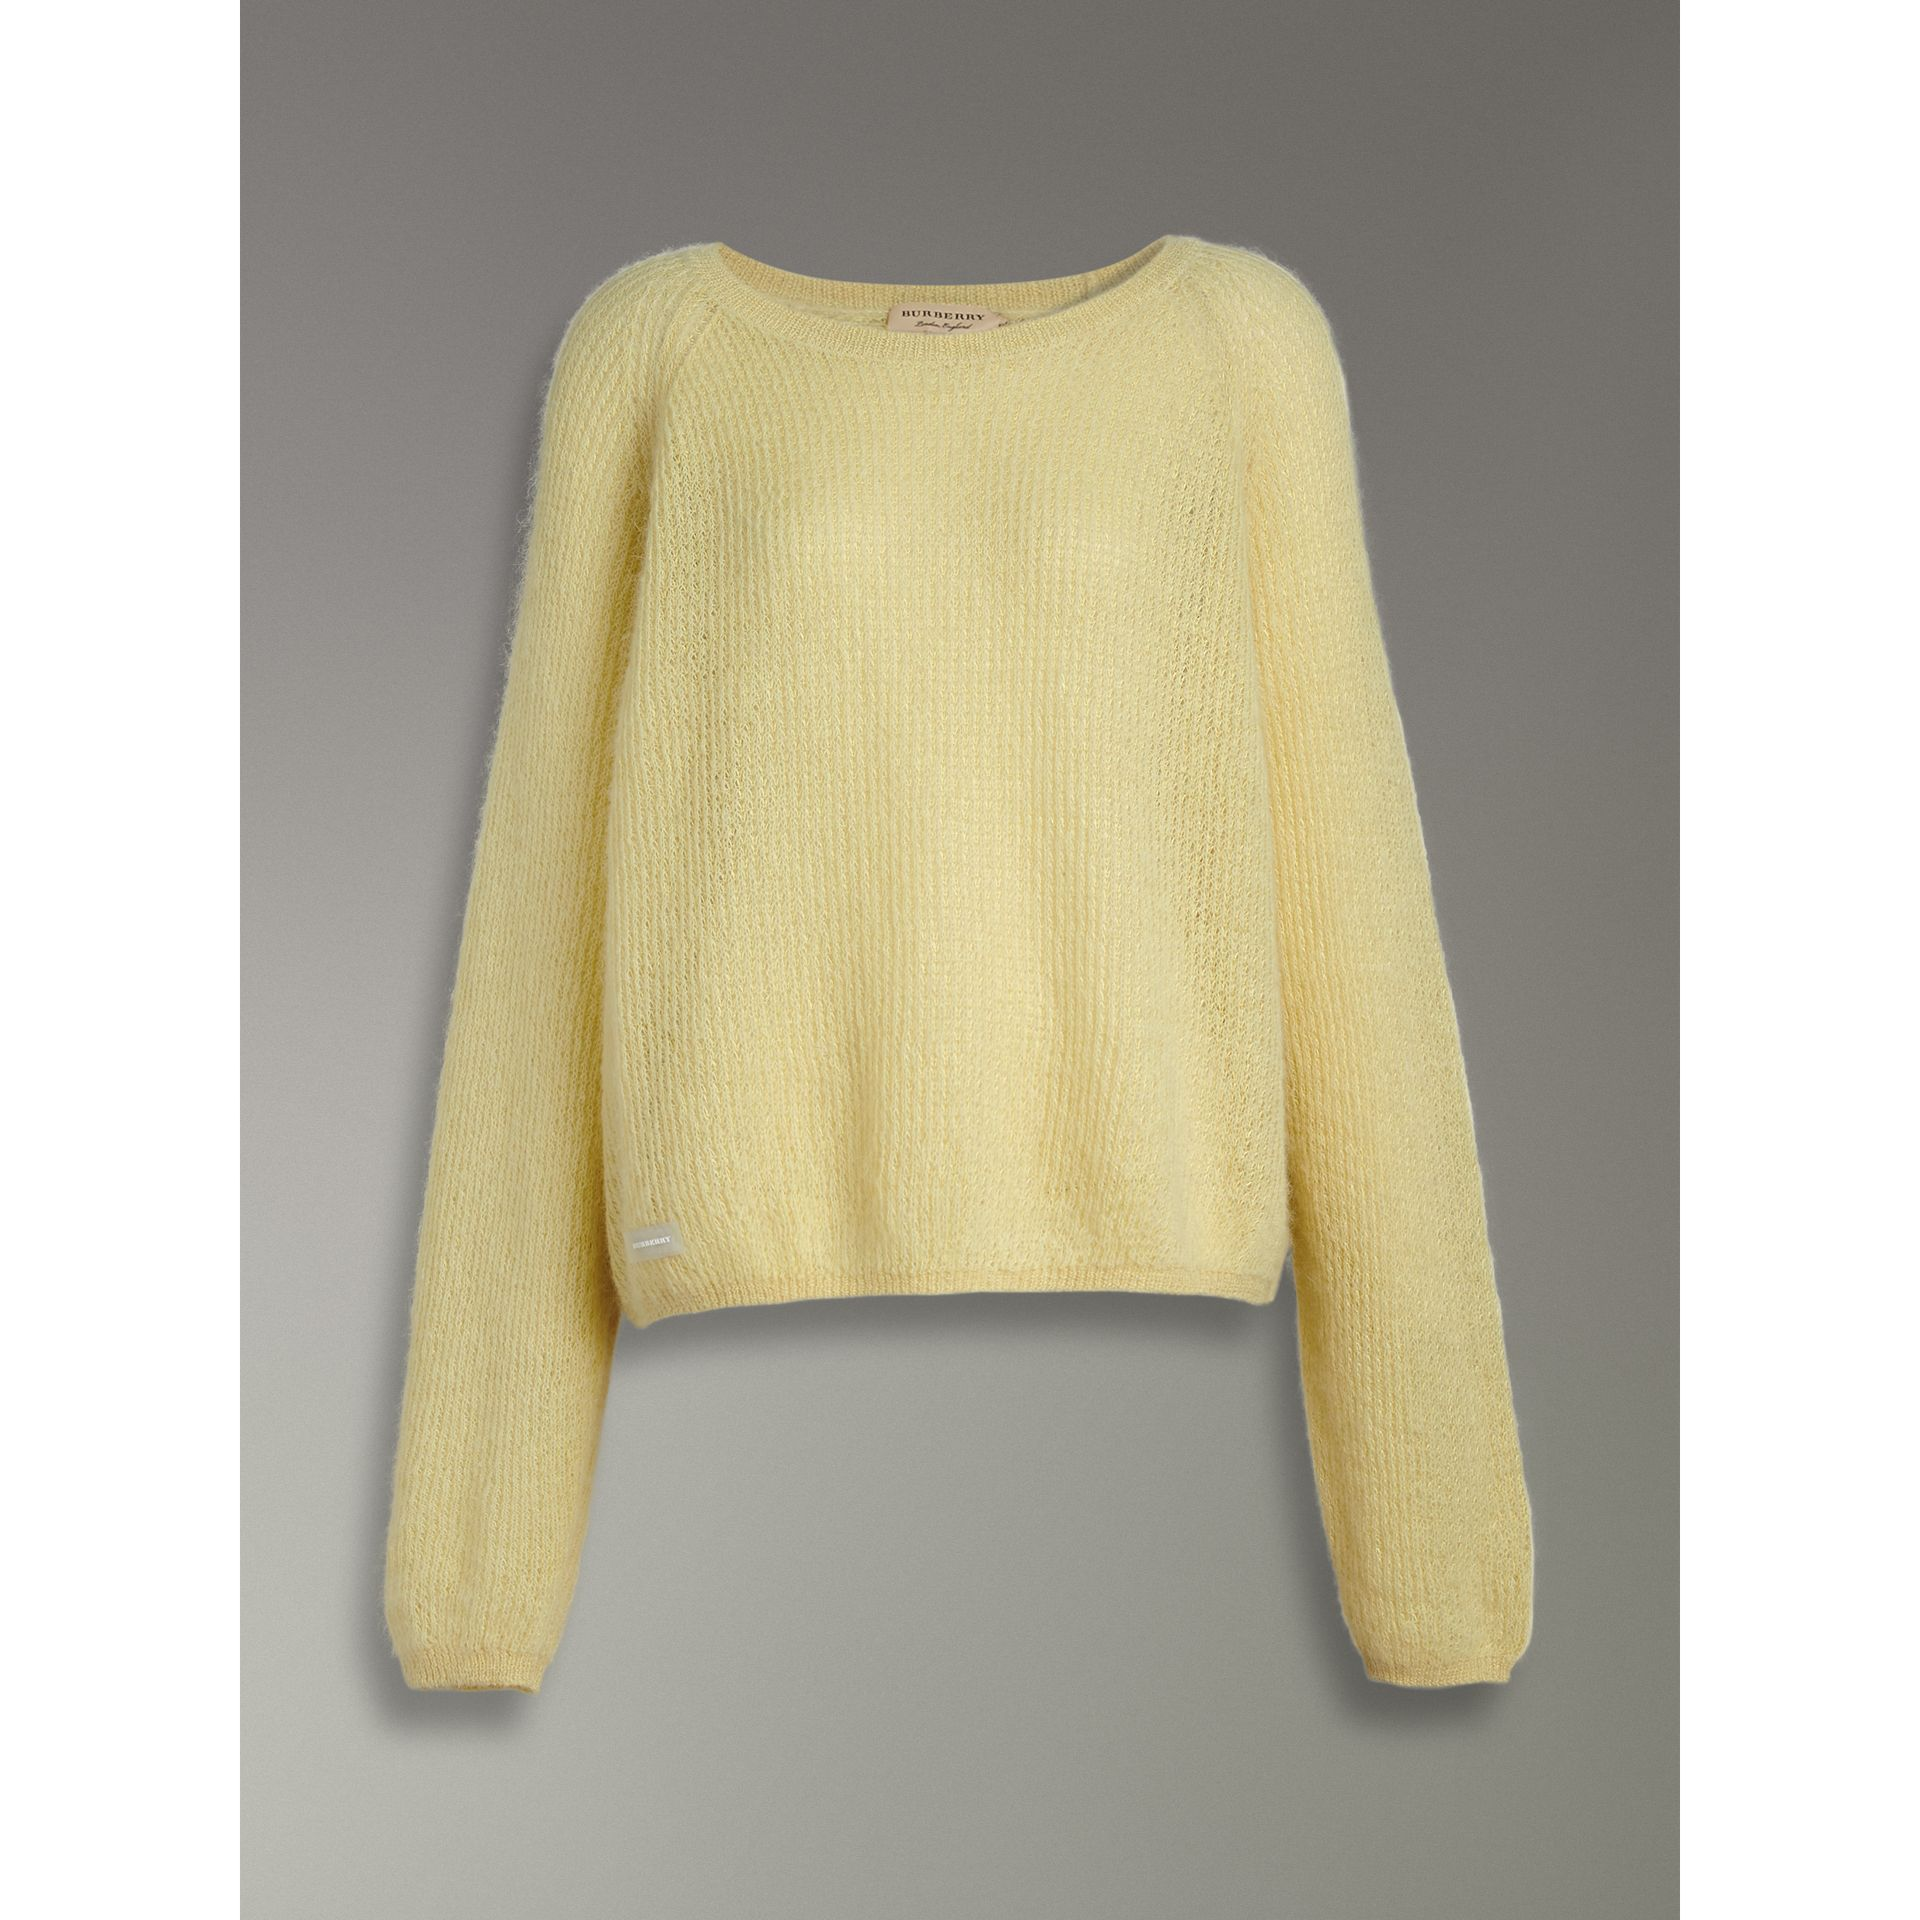 Mohair Silk Blend Sweater in Yellow Barley - Women | Burberry Hong Kong - gallery image 3